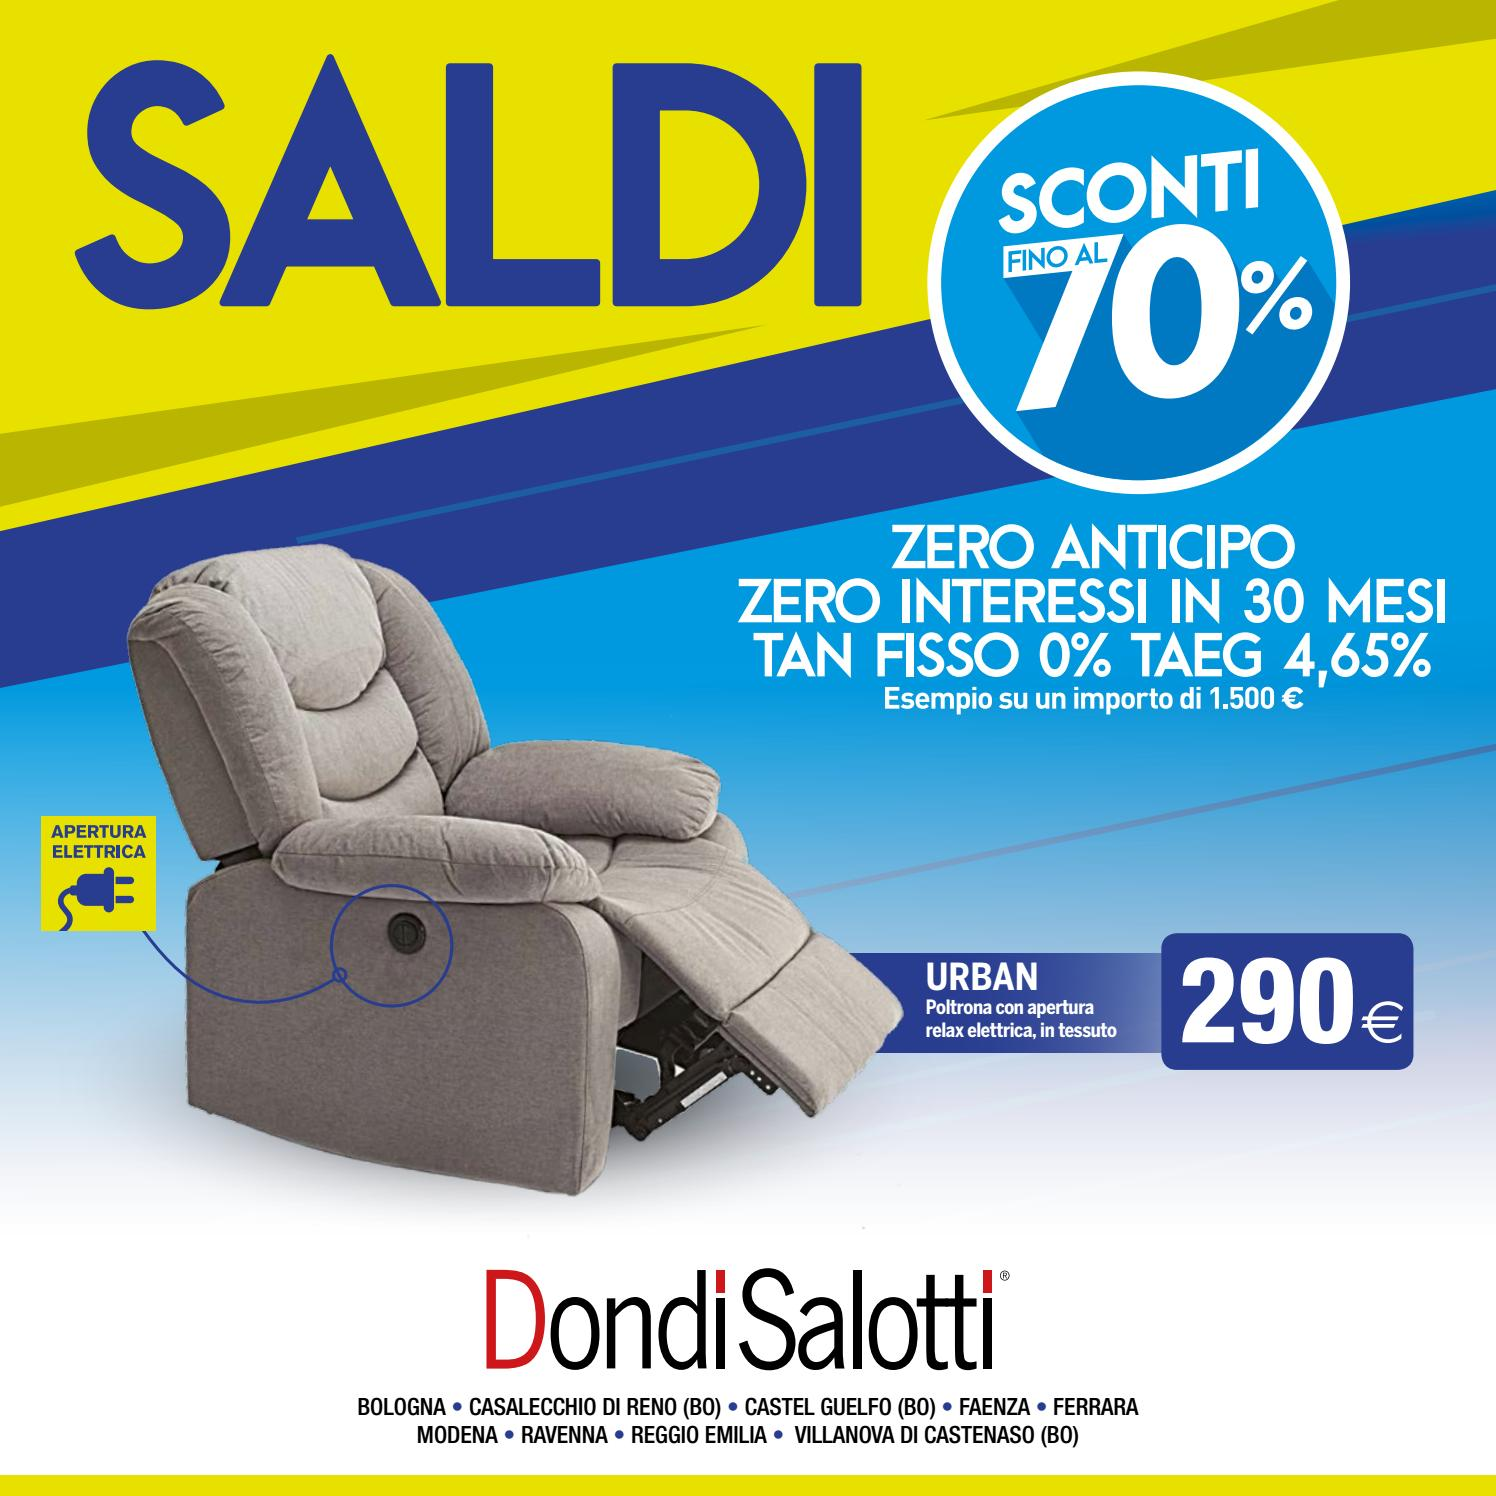 Dondi salotti saldi 2018_inverno by Michele Travagli - issuu